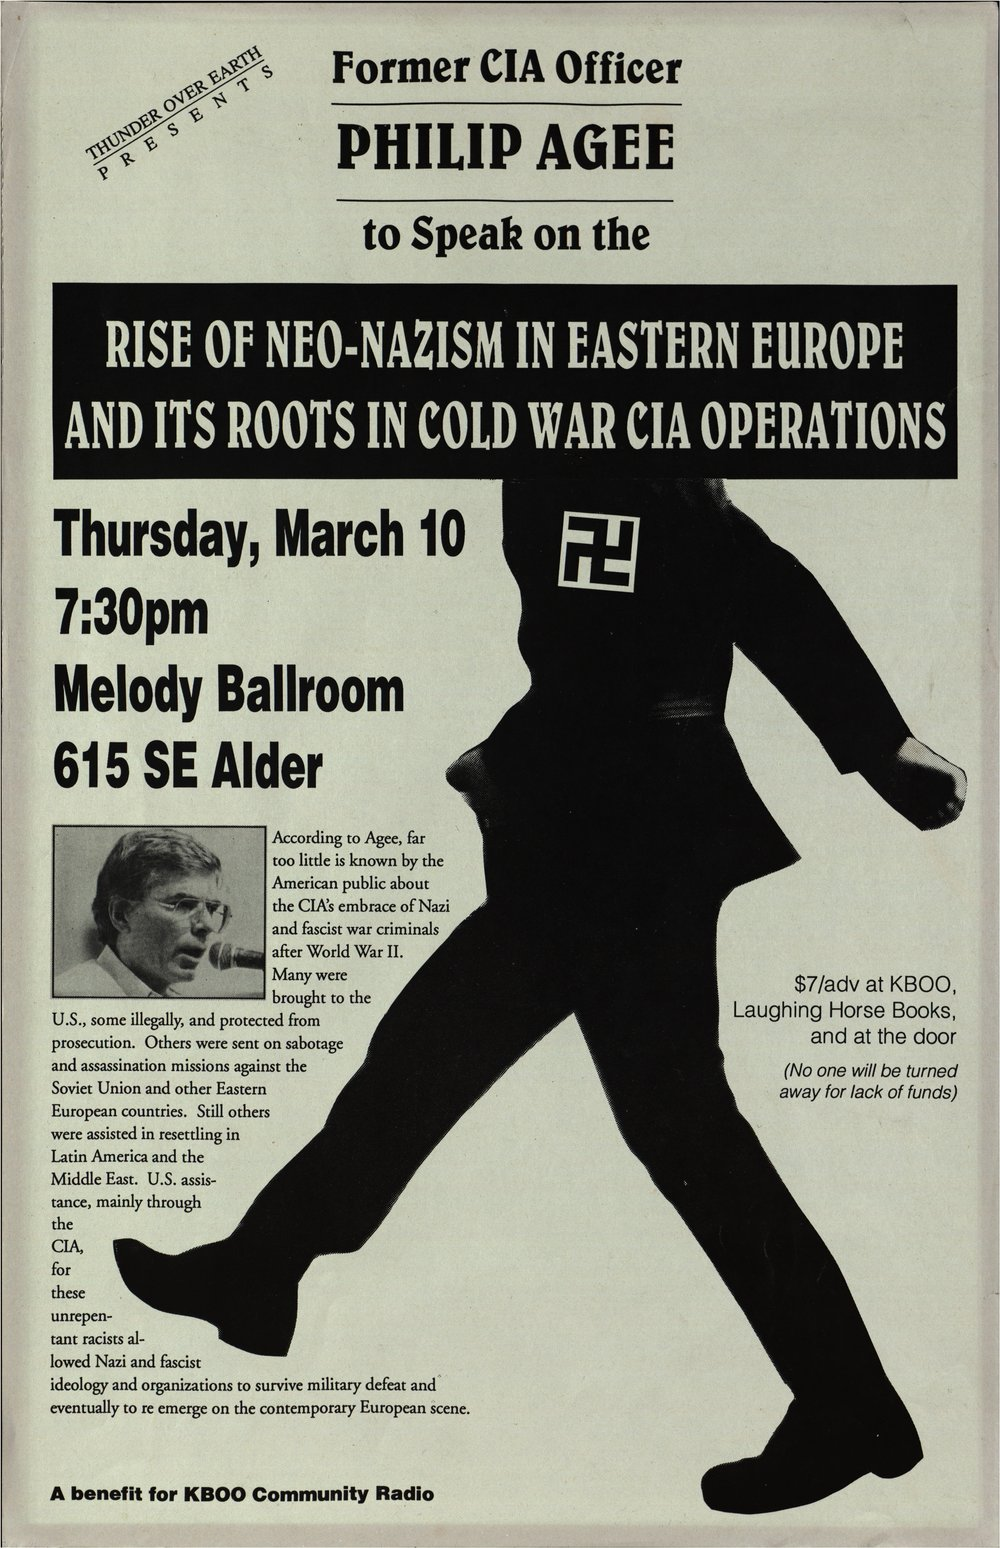 KBOO_Posters_OS_Philip_Agee_Talk_CIA_Neo_Nazi.jpg